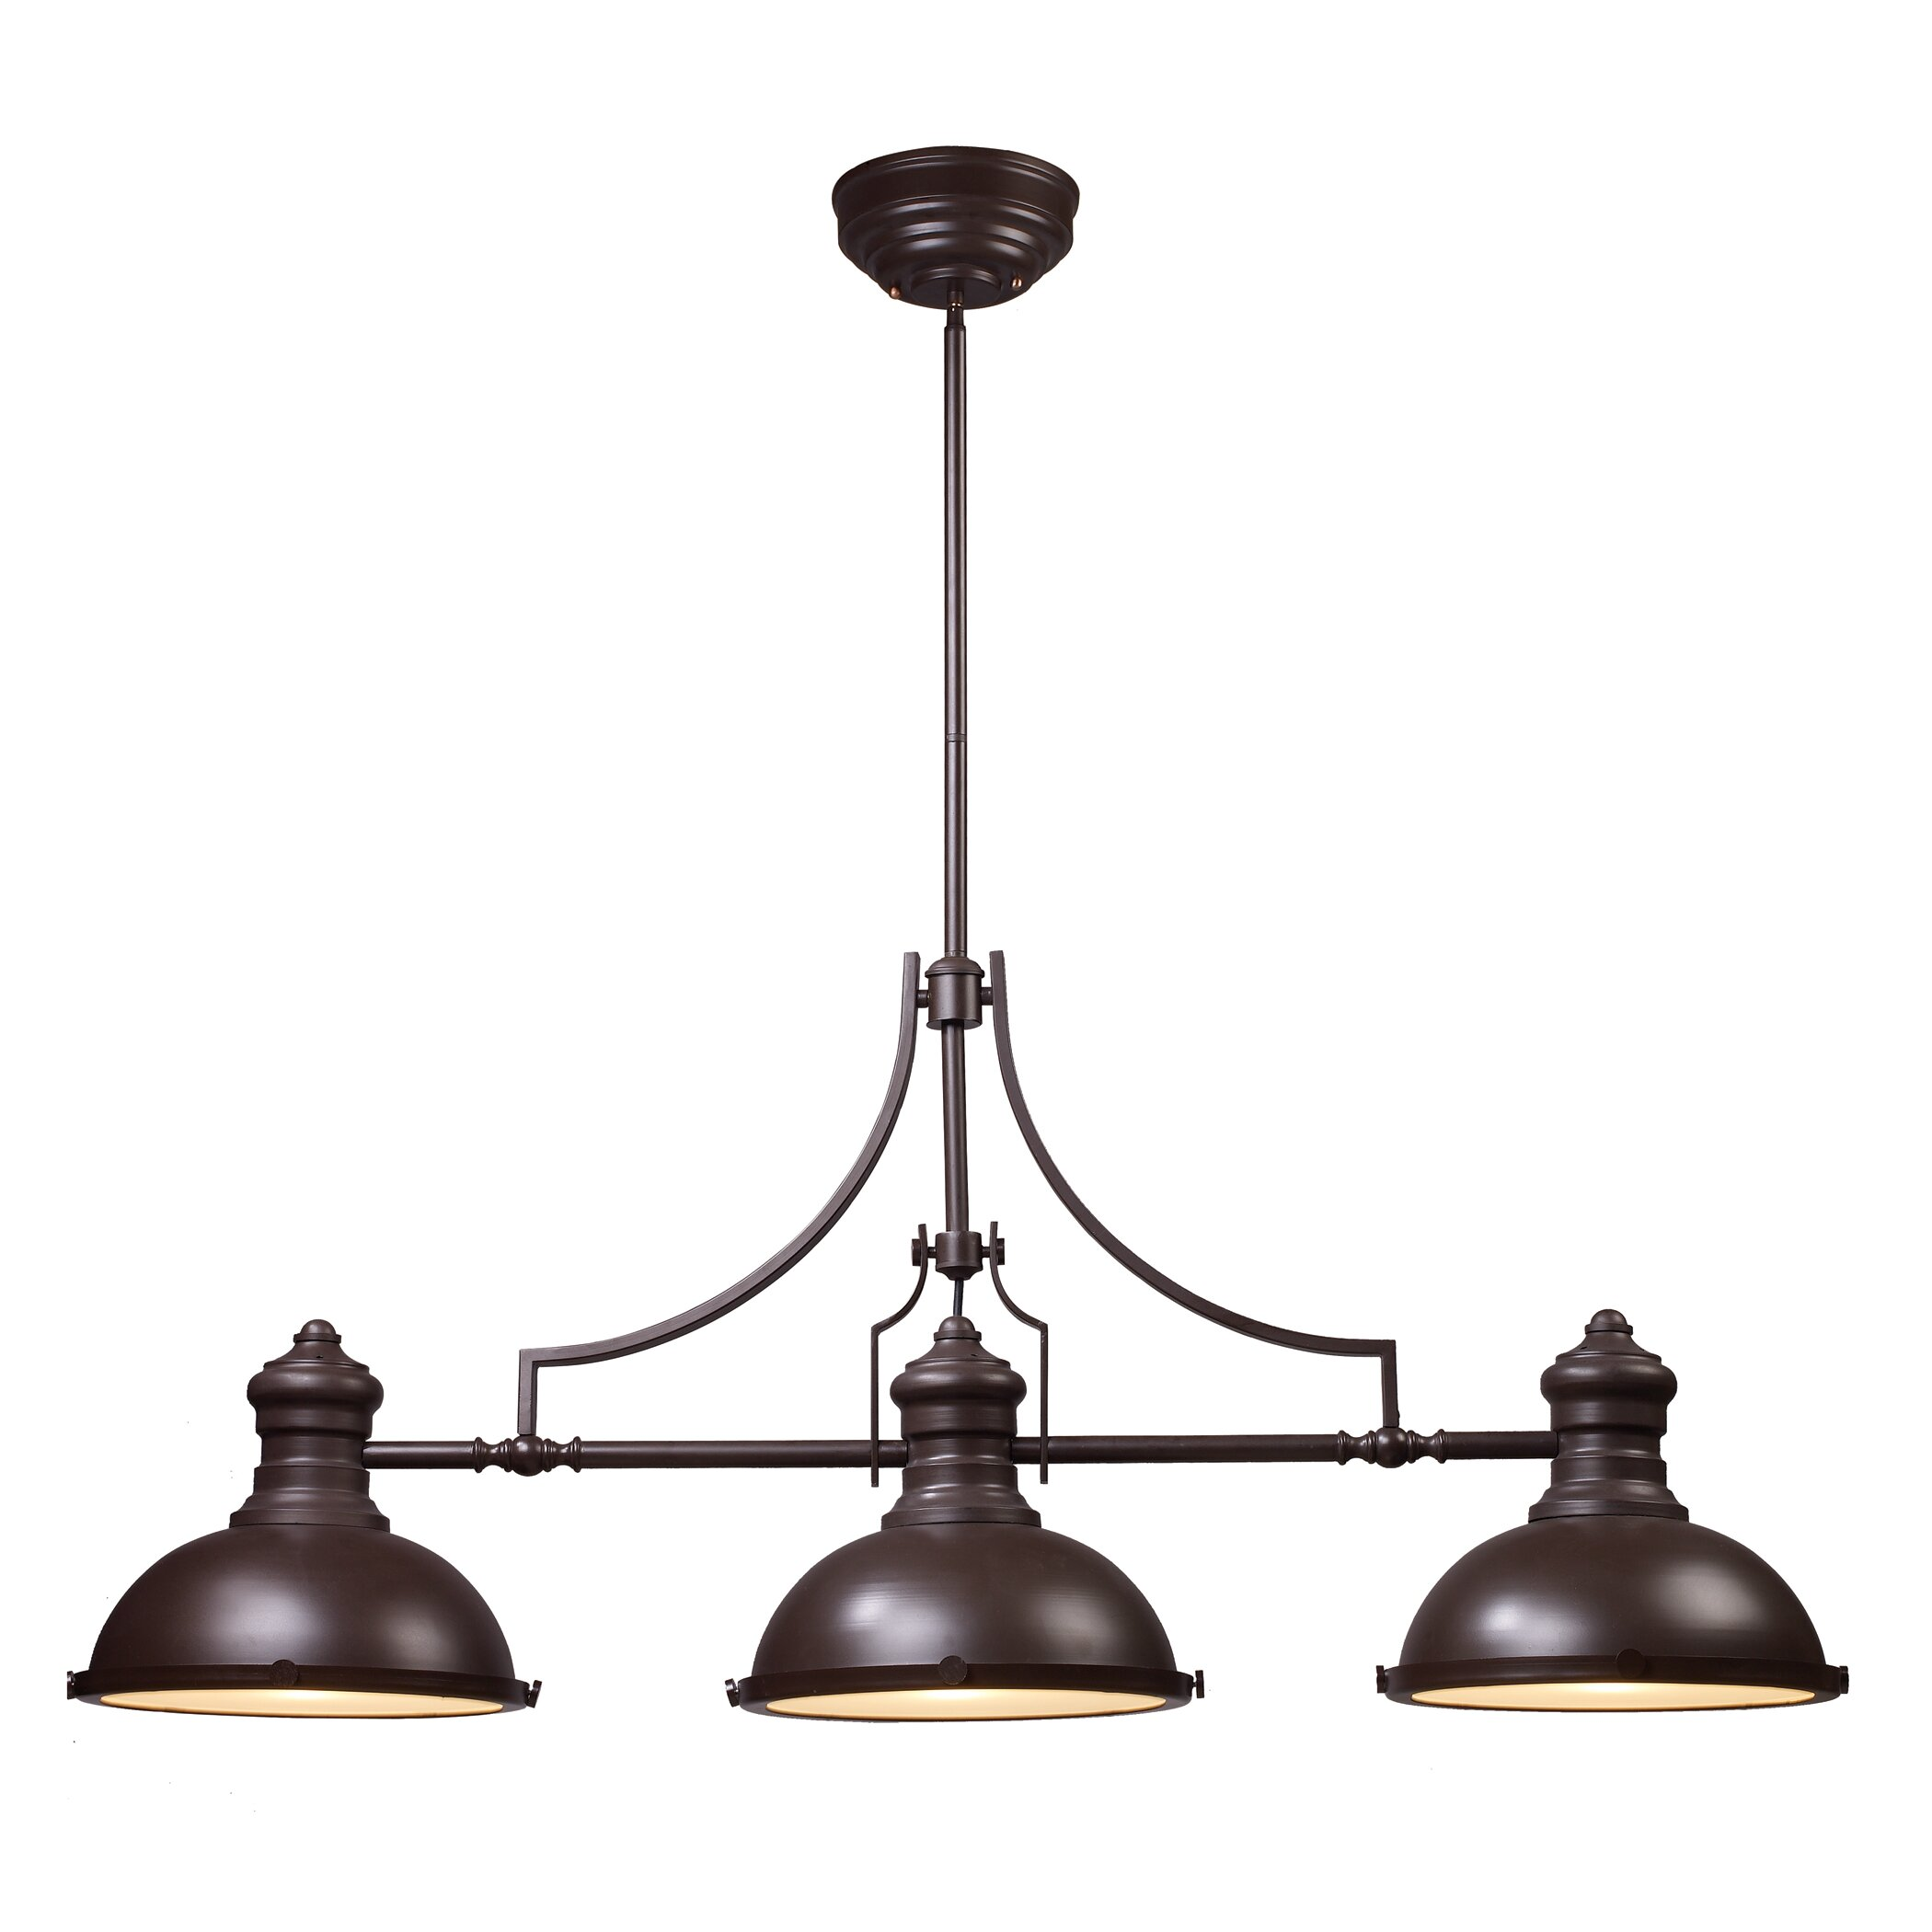 Wayfair Lights: Landmark Lighting Chadwick 3 Light Kitchen Island Pendant